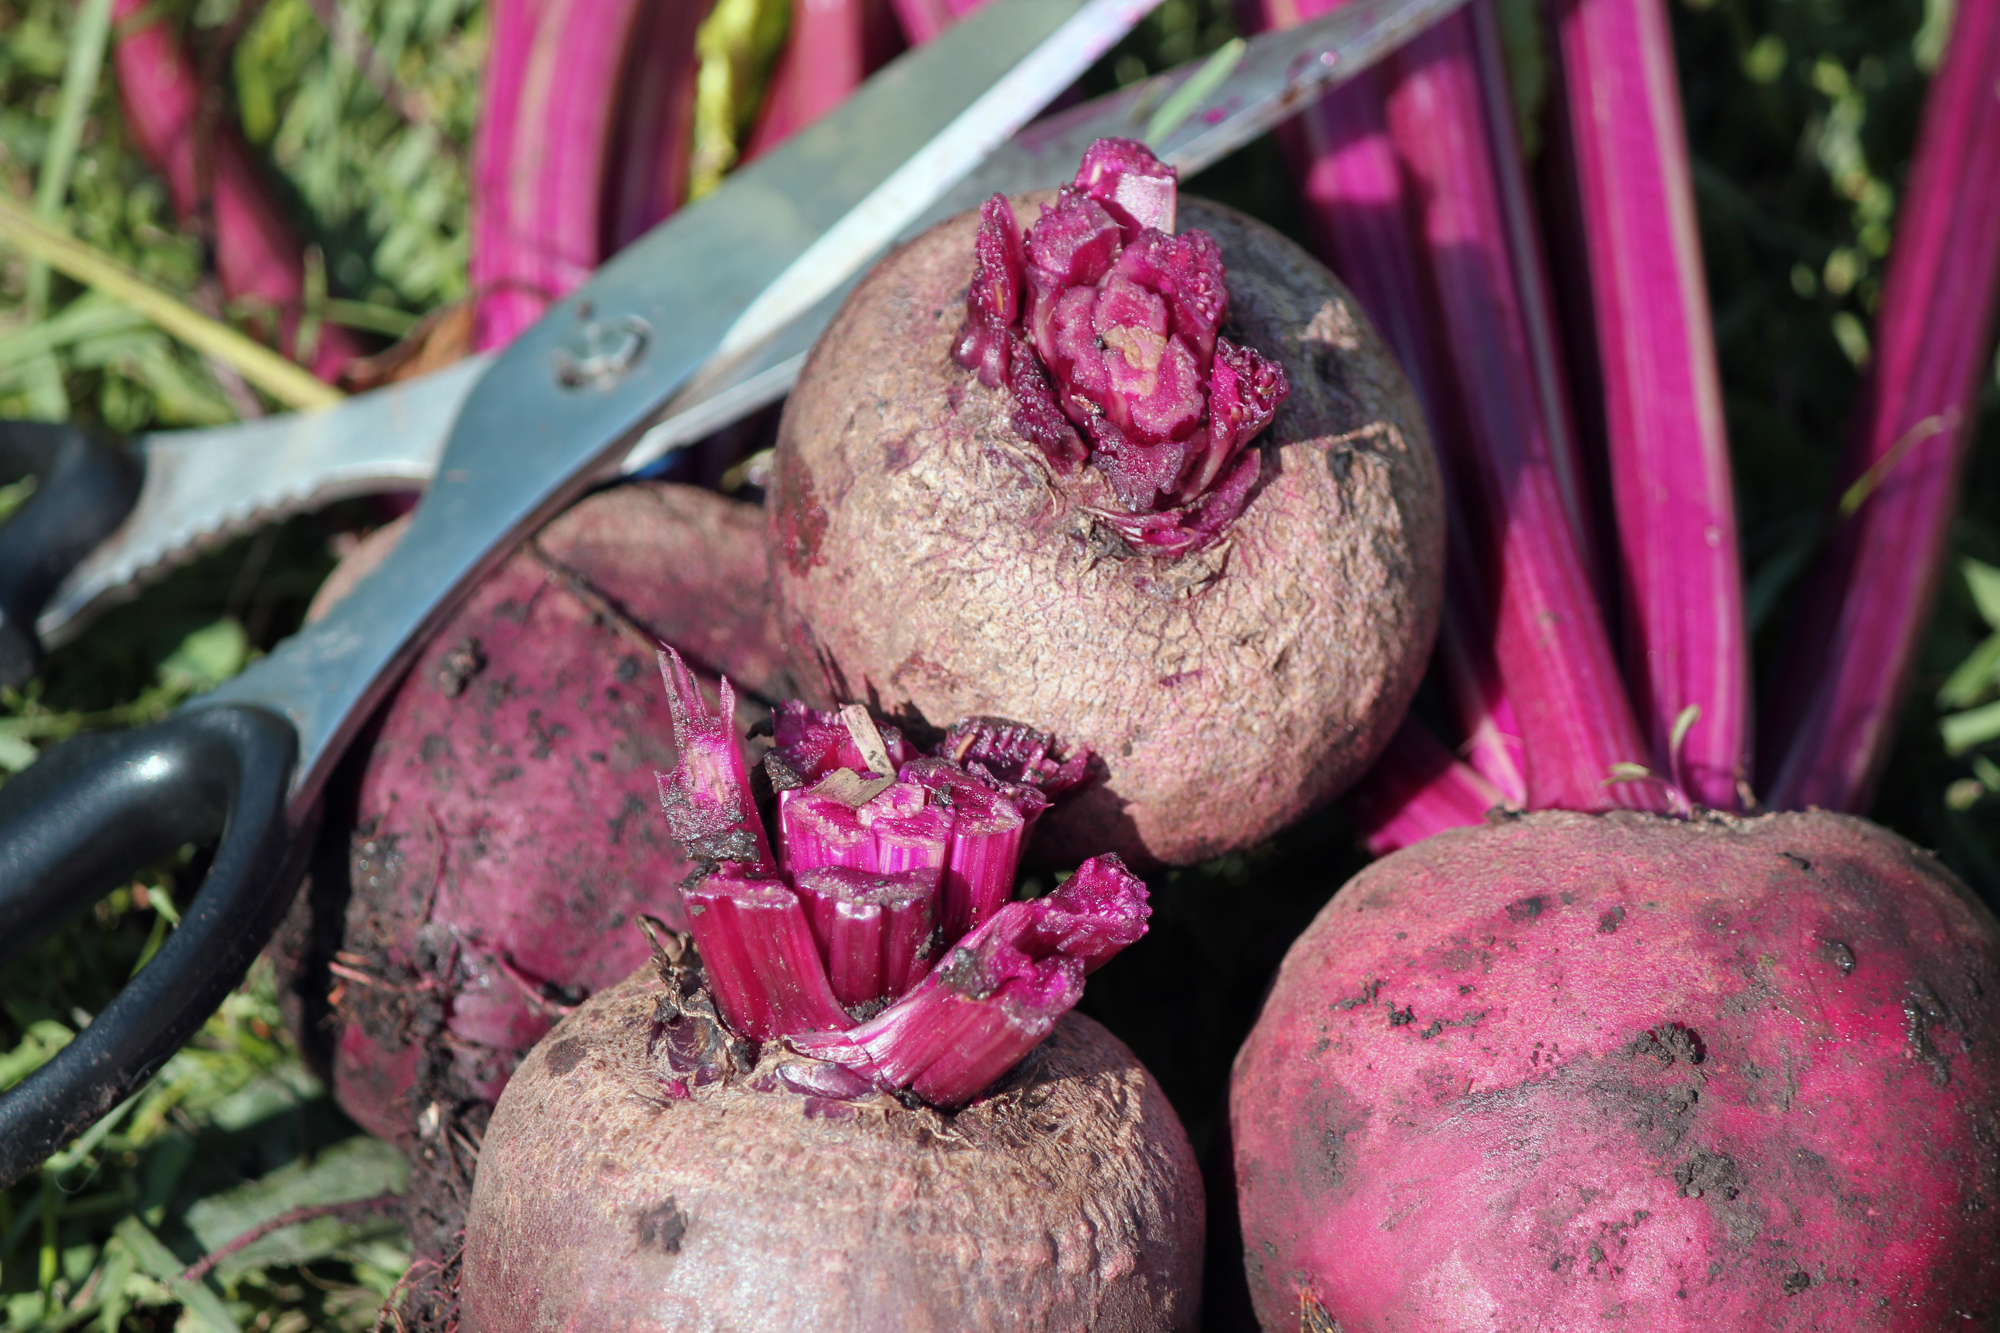 Beets, ready for storage. (Photo by Madeline Yakimchuk)